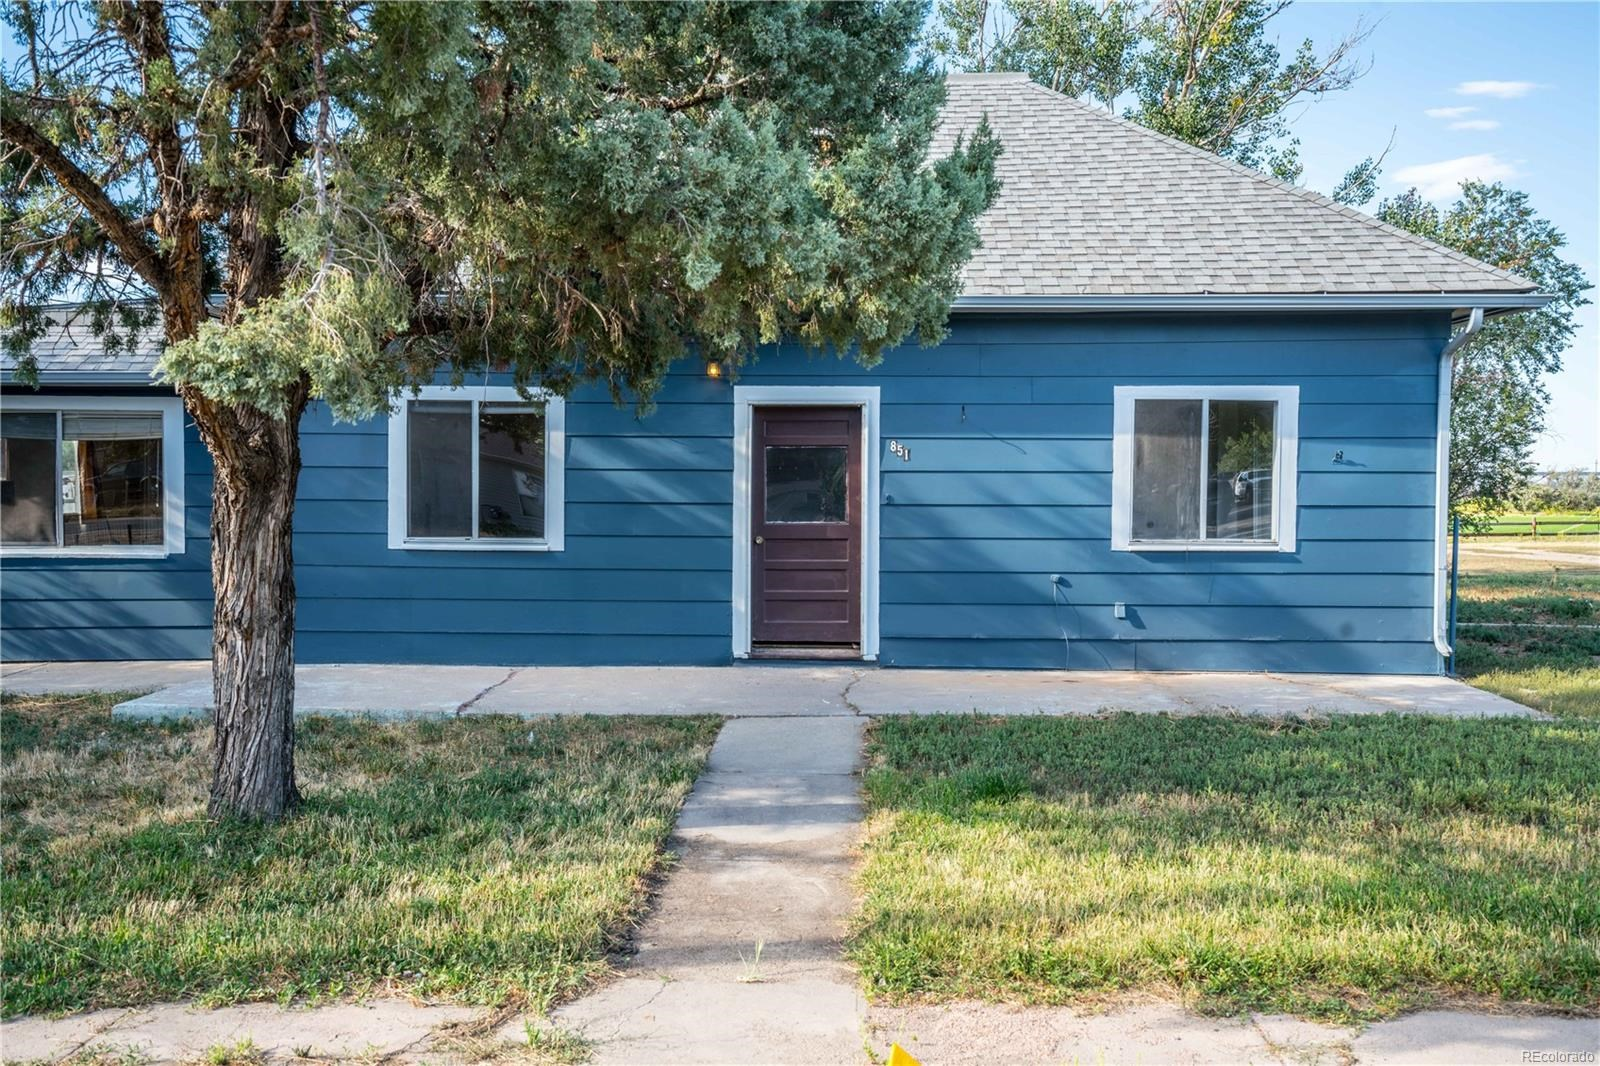 MLS# 8415576 - 2 - 851 Main Street, Hudson, CO 80642